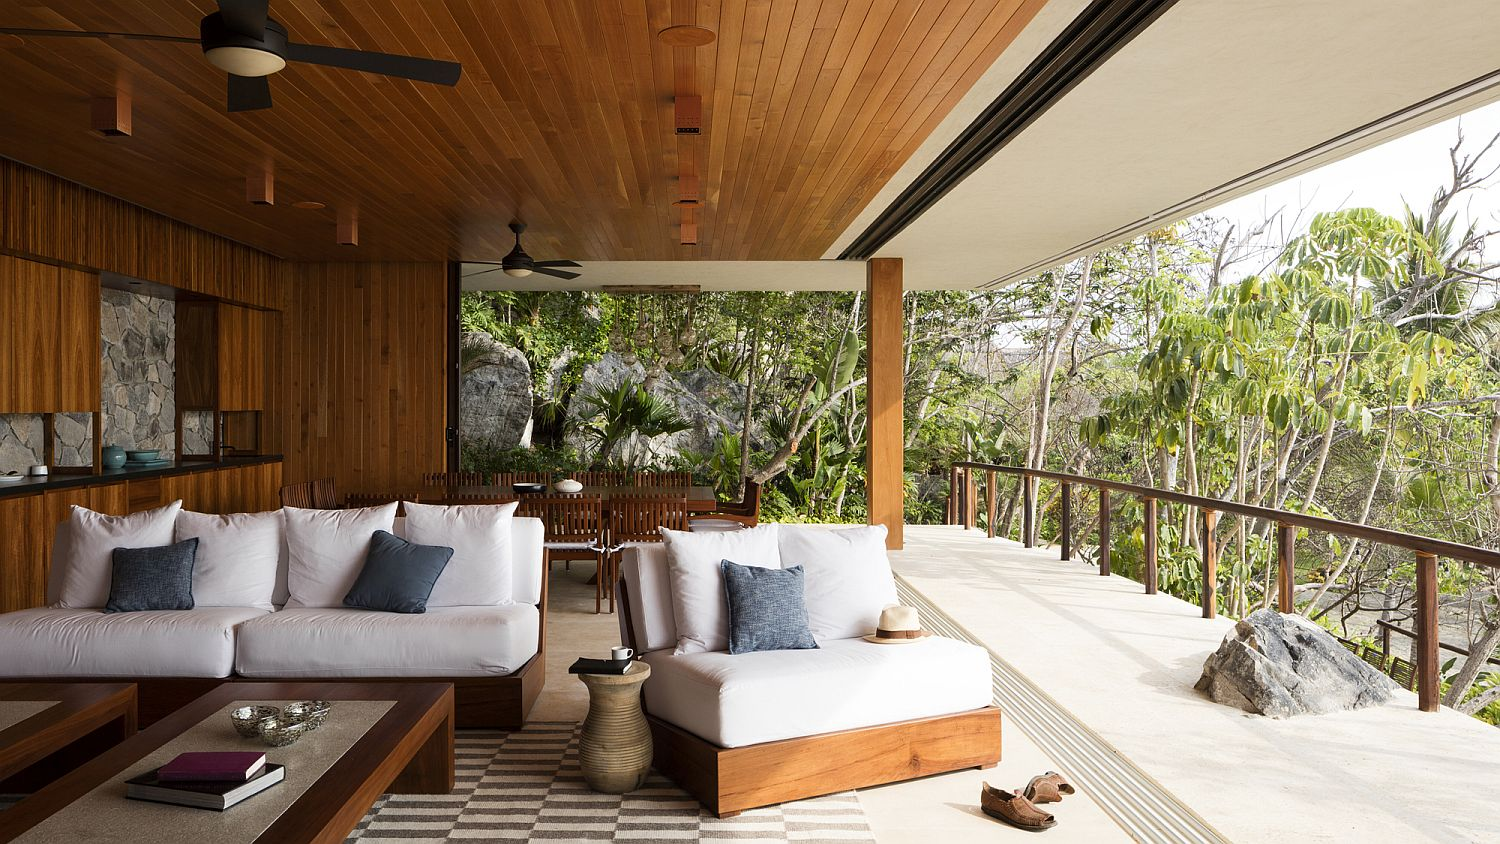 Open pavilion style living area with a view of the gorgeous landscape and ocean